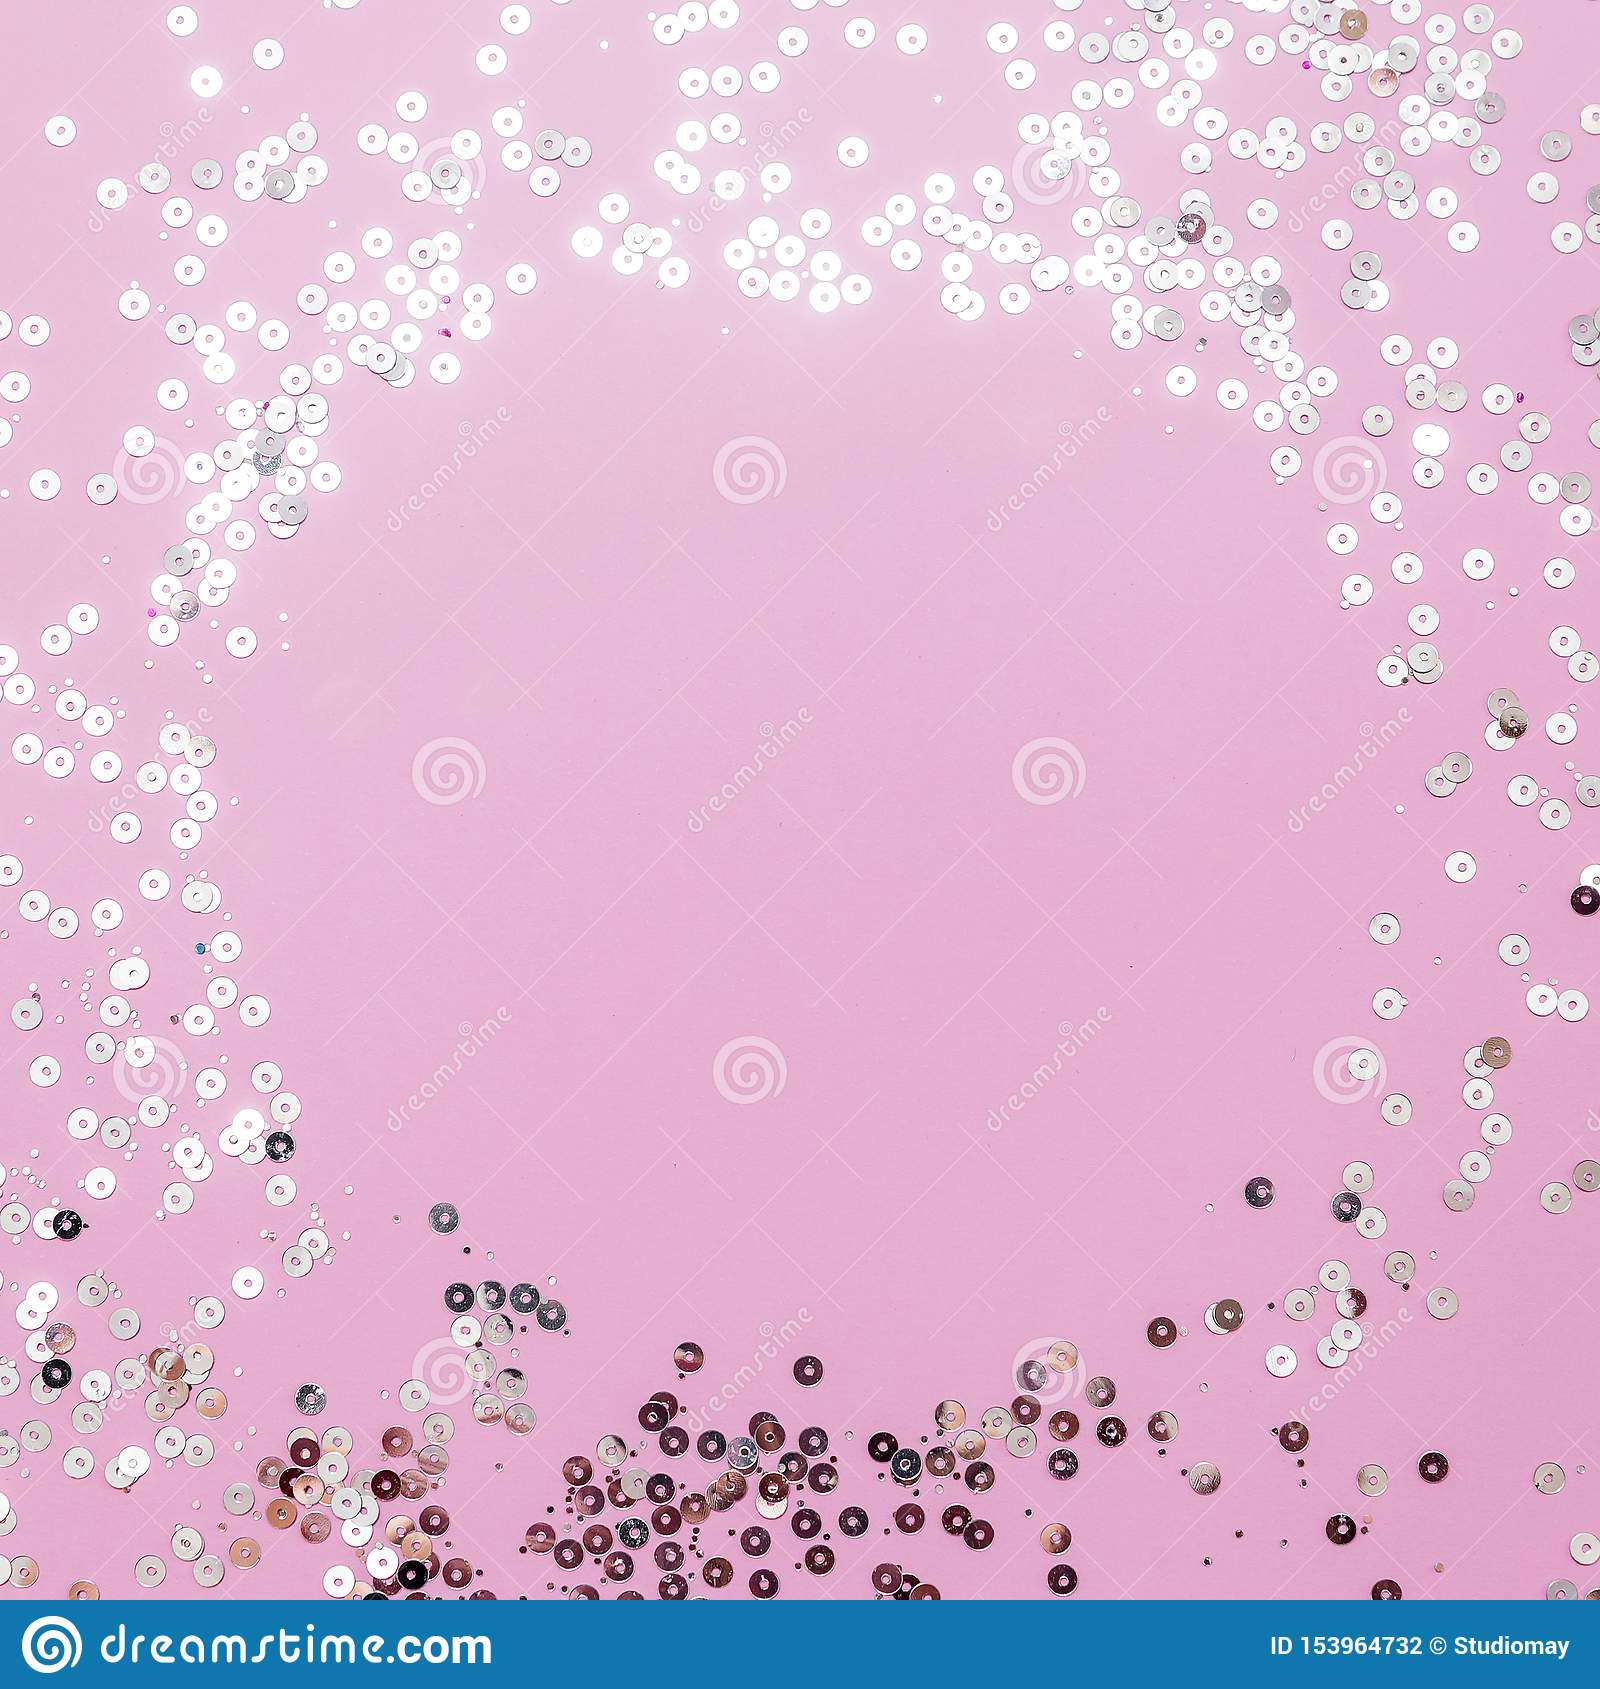 Pink background with holographic sparkles or sequins. Christmas, winter, birthday, celebration flat lay, square cropping. Social